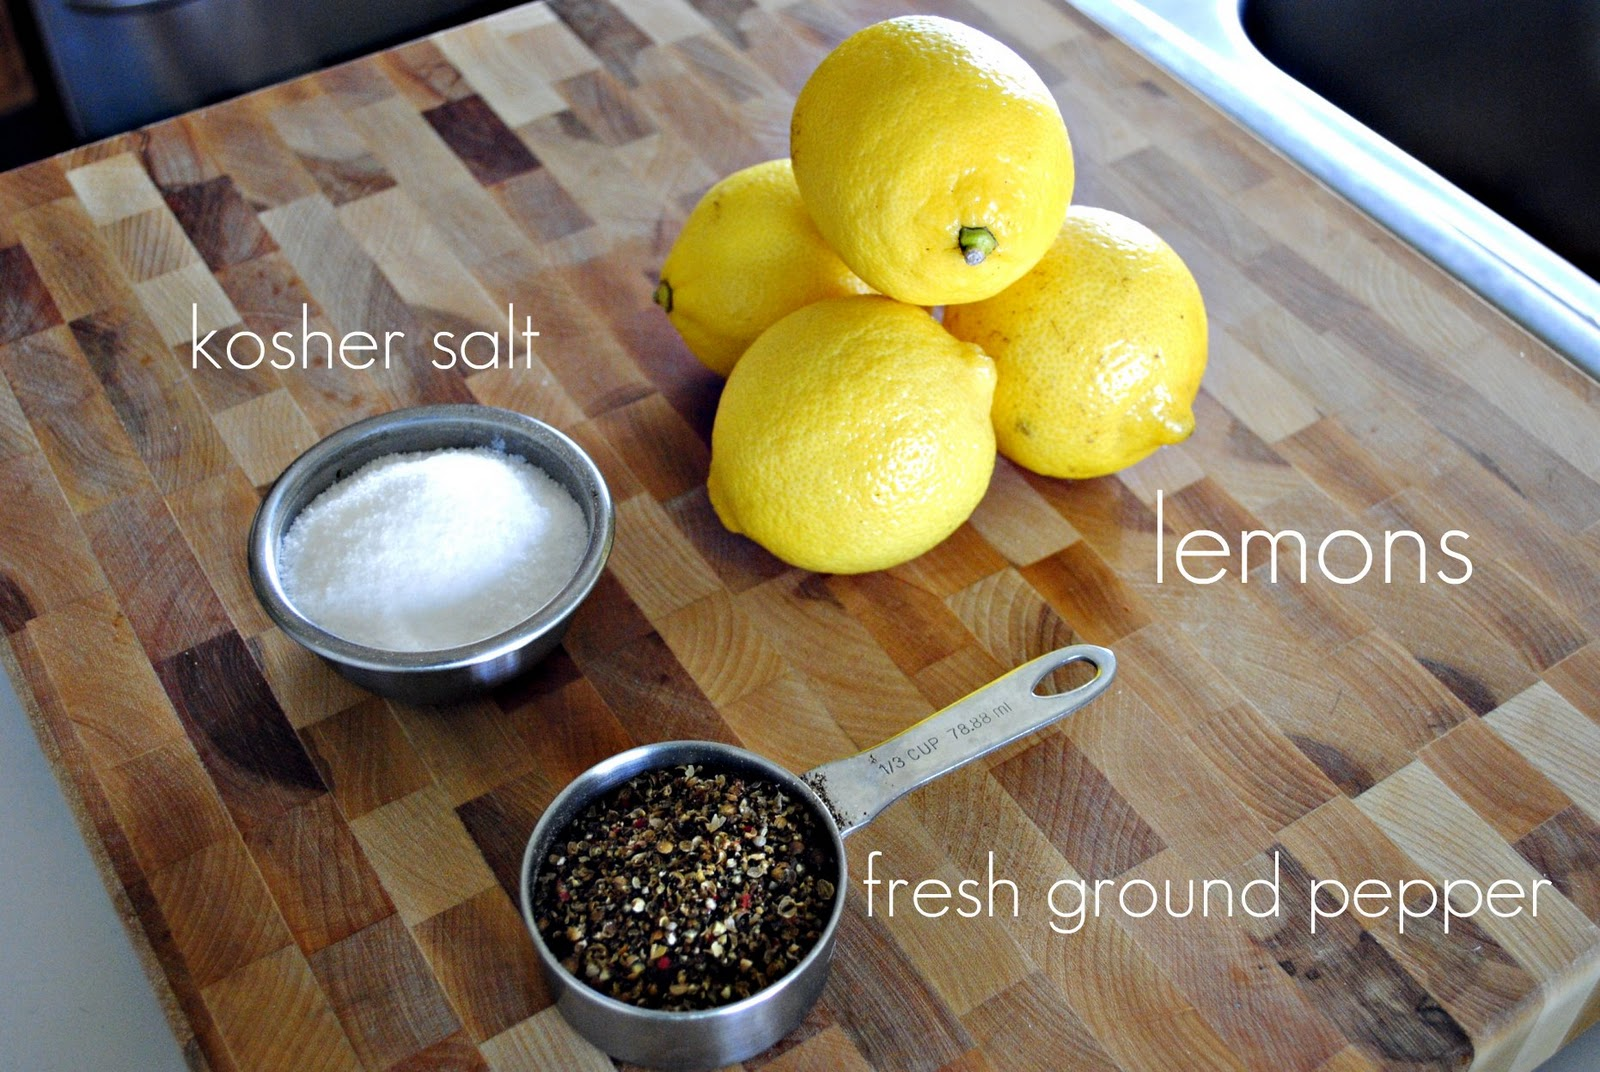 Pepper, salt, lemon